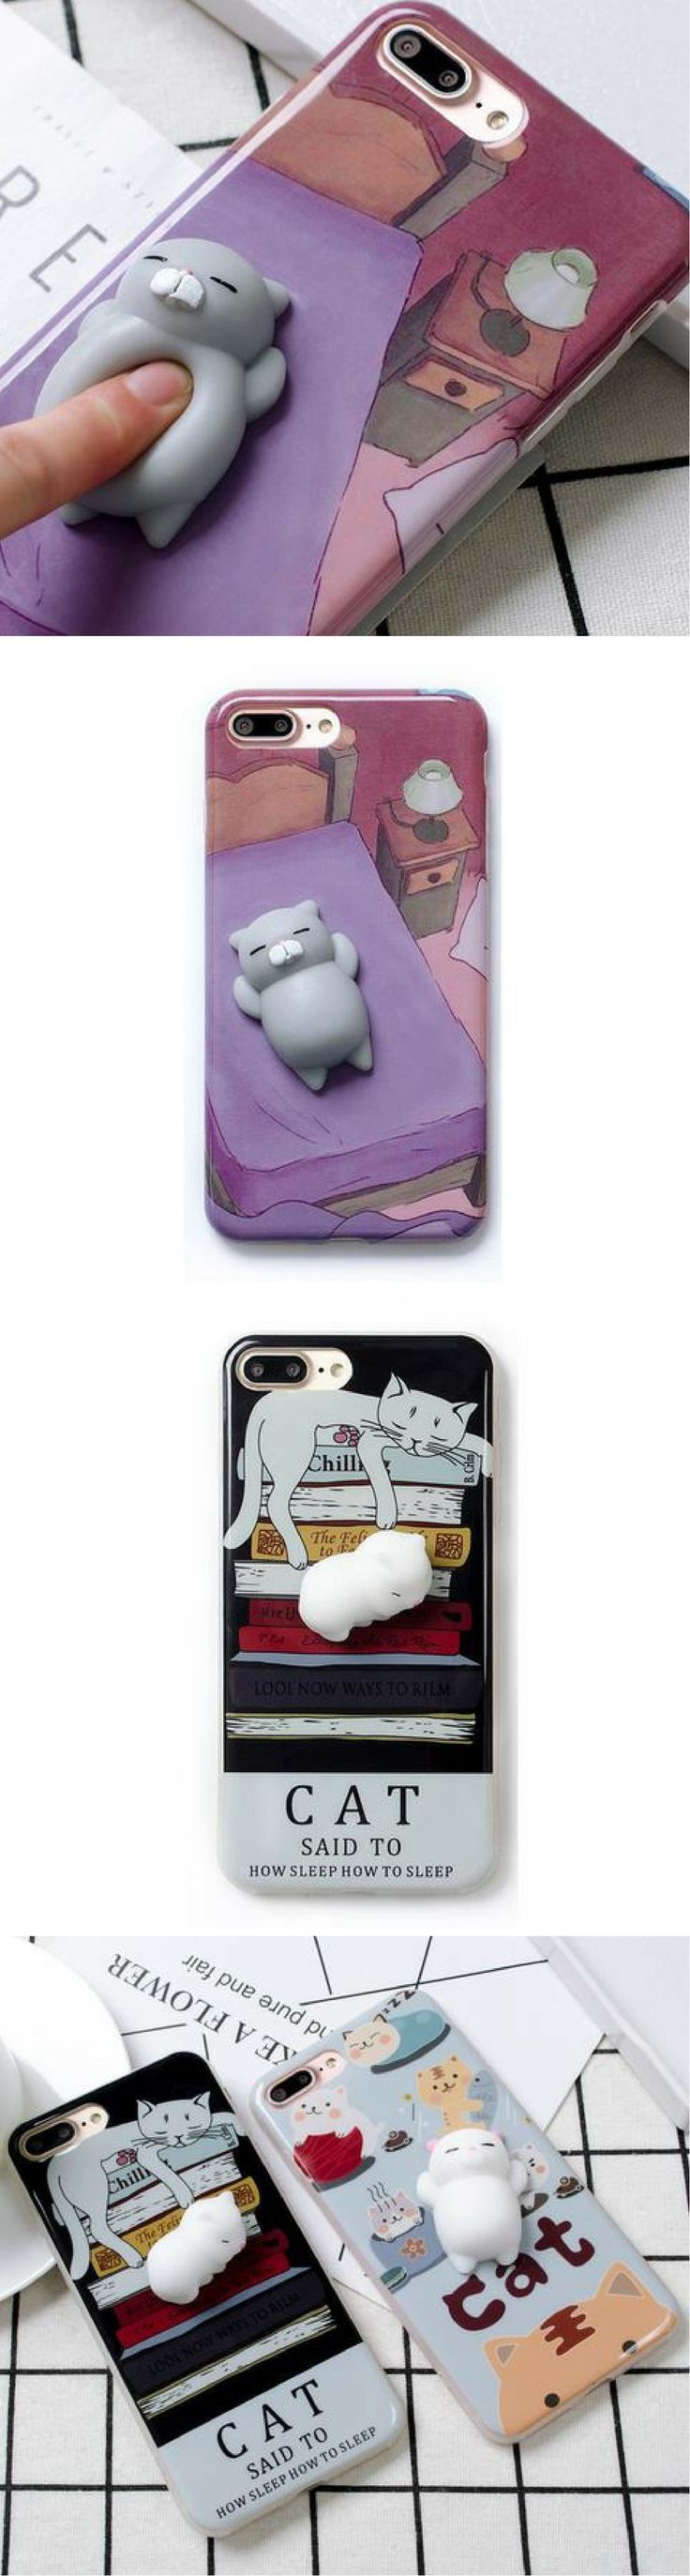 GET YOUR 3D Cartoon Cute Soft Silicone Squishy Squishy Cat Cover Case for iPhone 6, 6S ,7 Plus Phone Cases for 60% off NOW